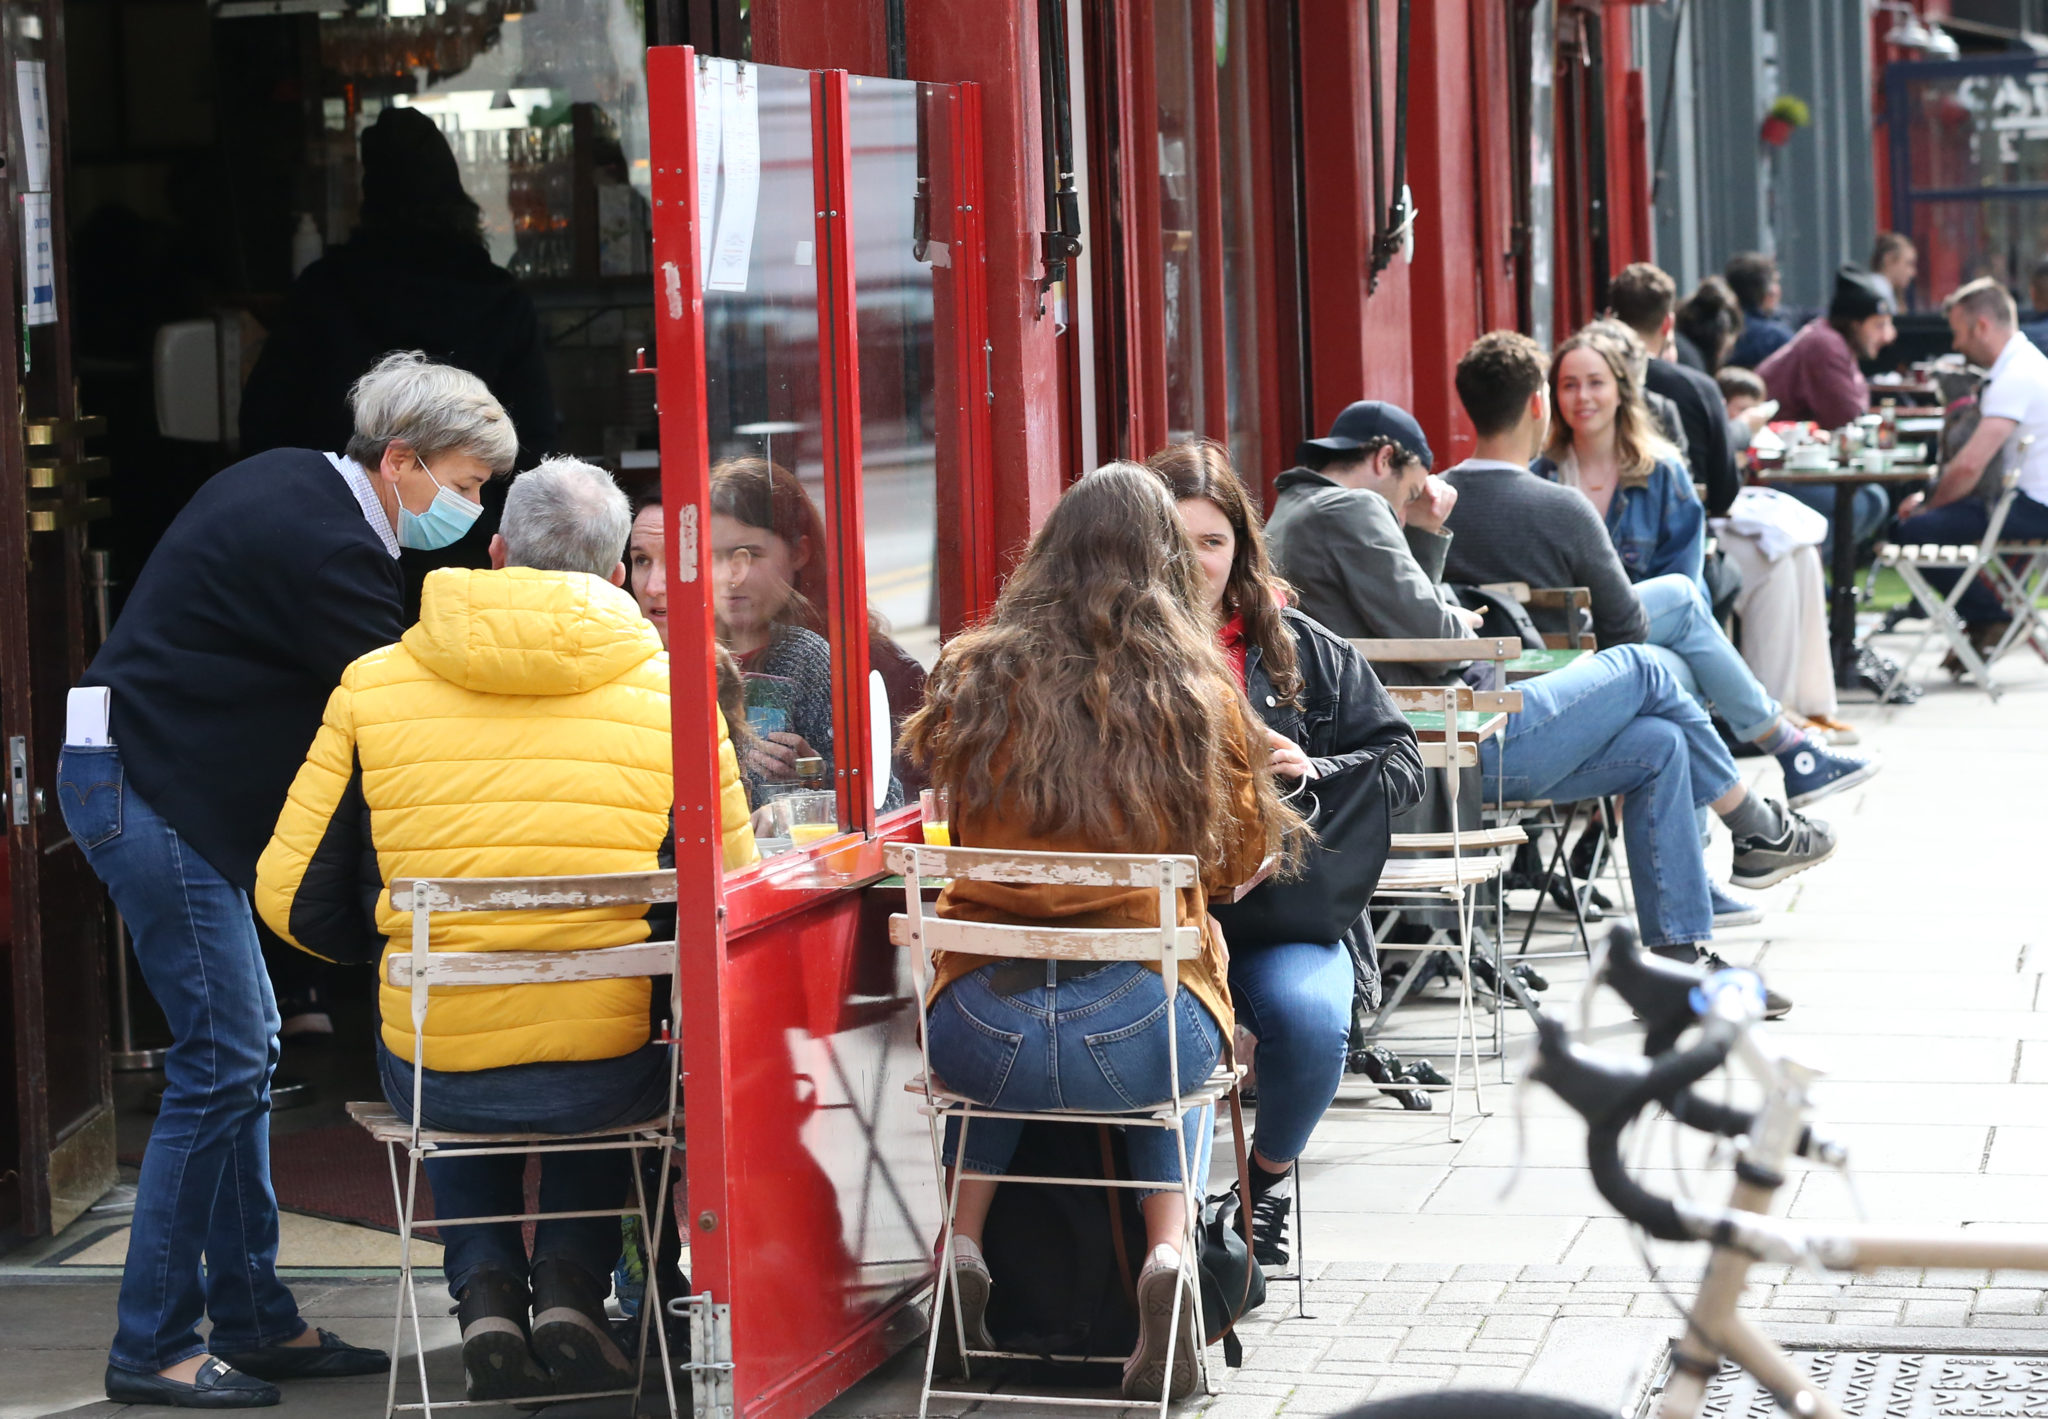 People enjoying food and drink on South William Street in Dublin cities